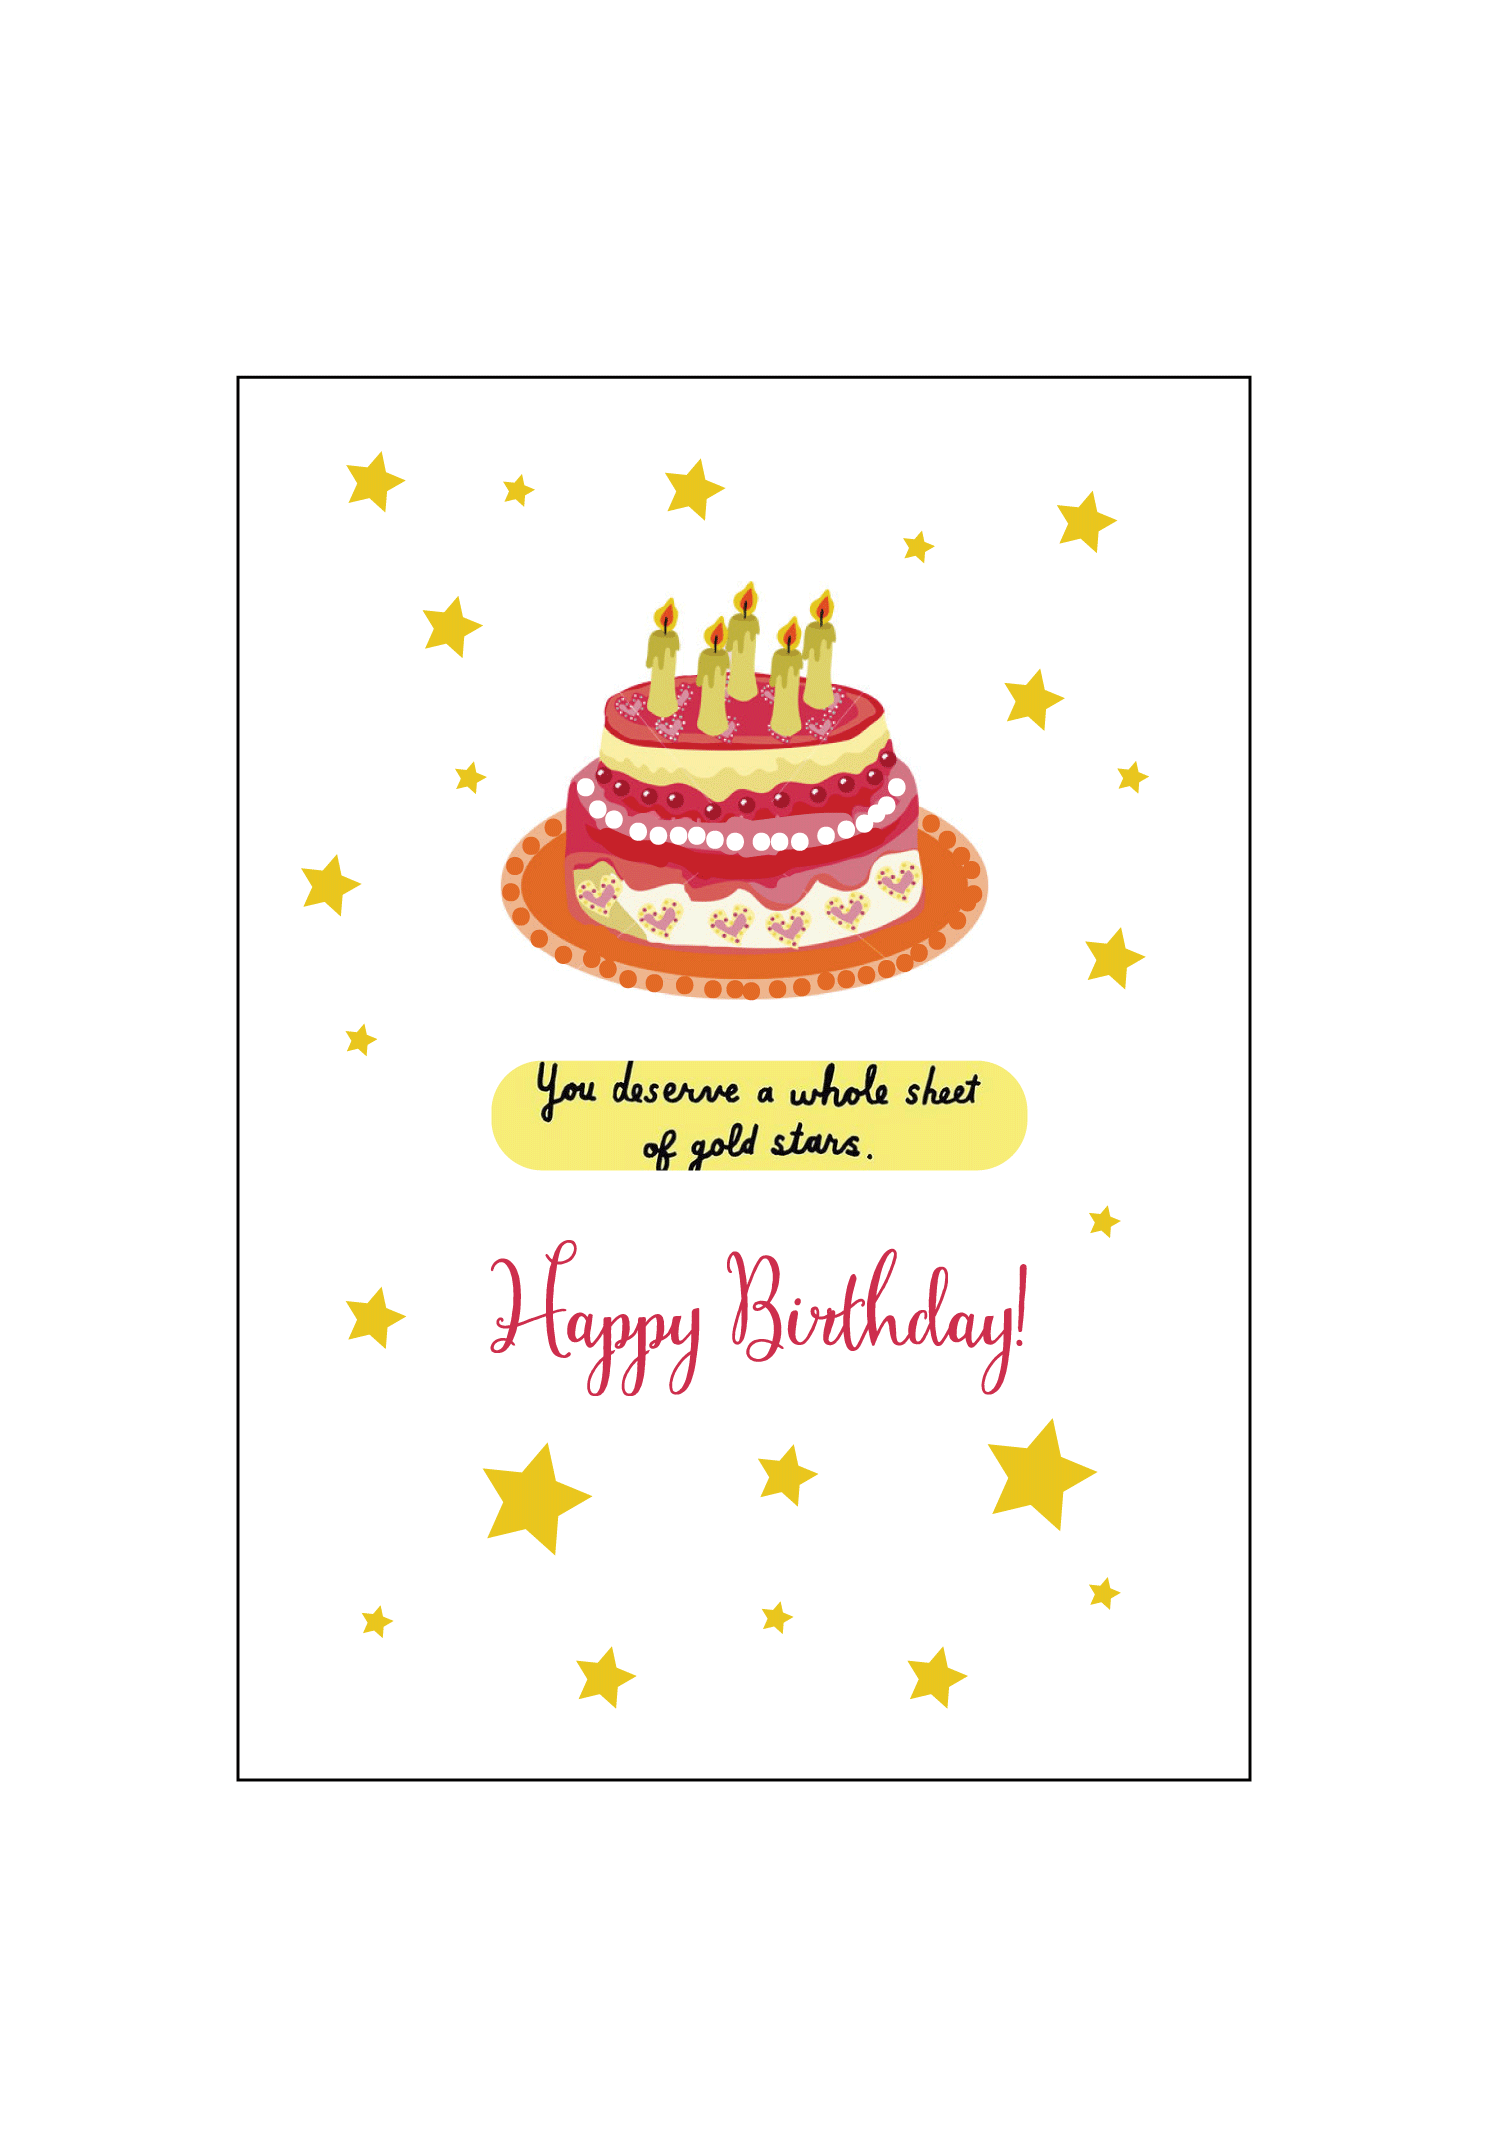 Gold Star Birthday Card Set Social Butterfly Designs